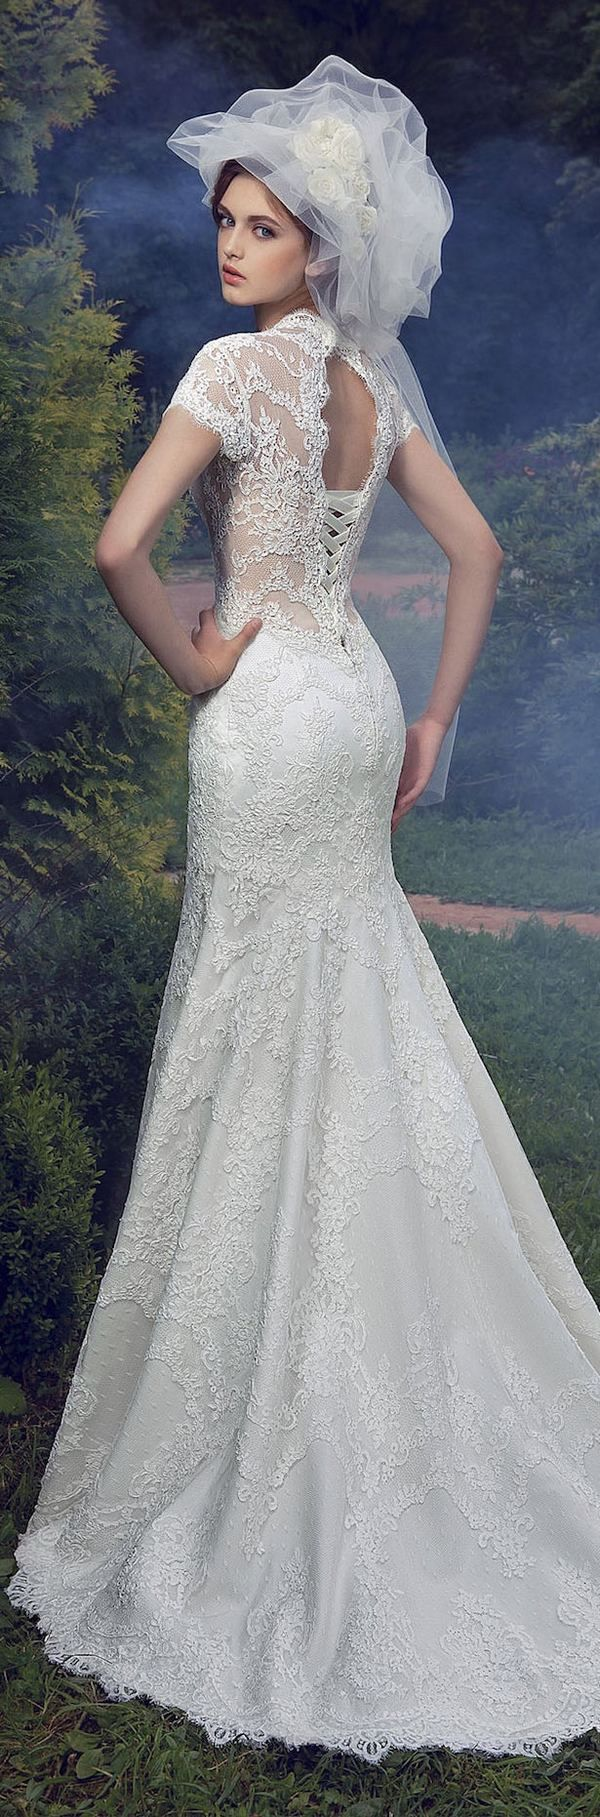 Wedding-Dresses-0637